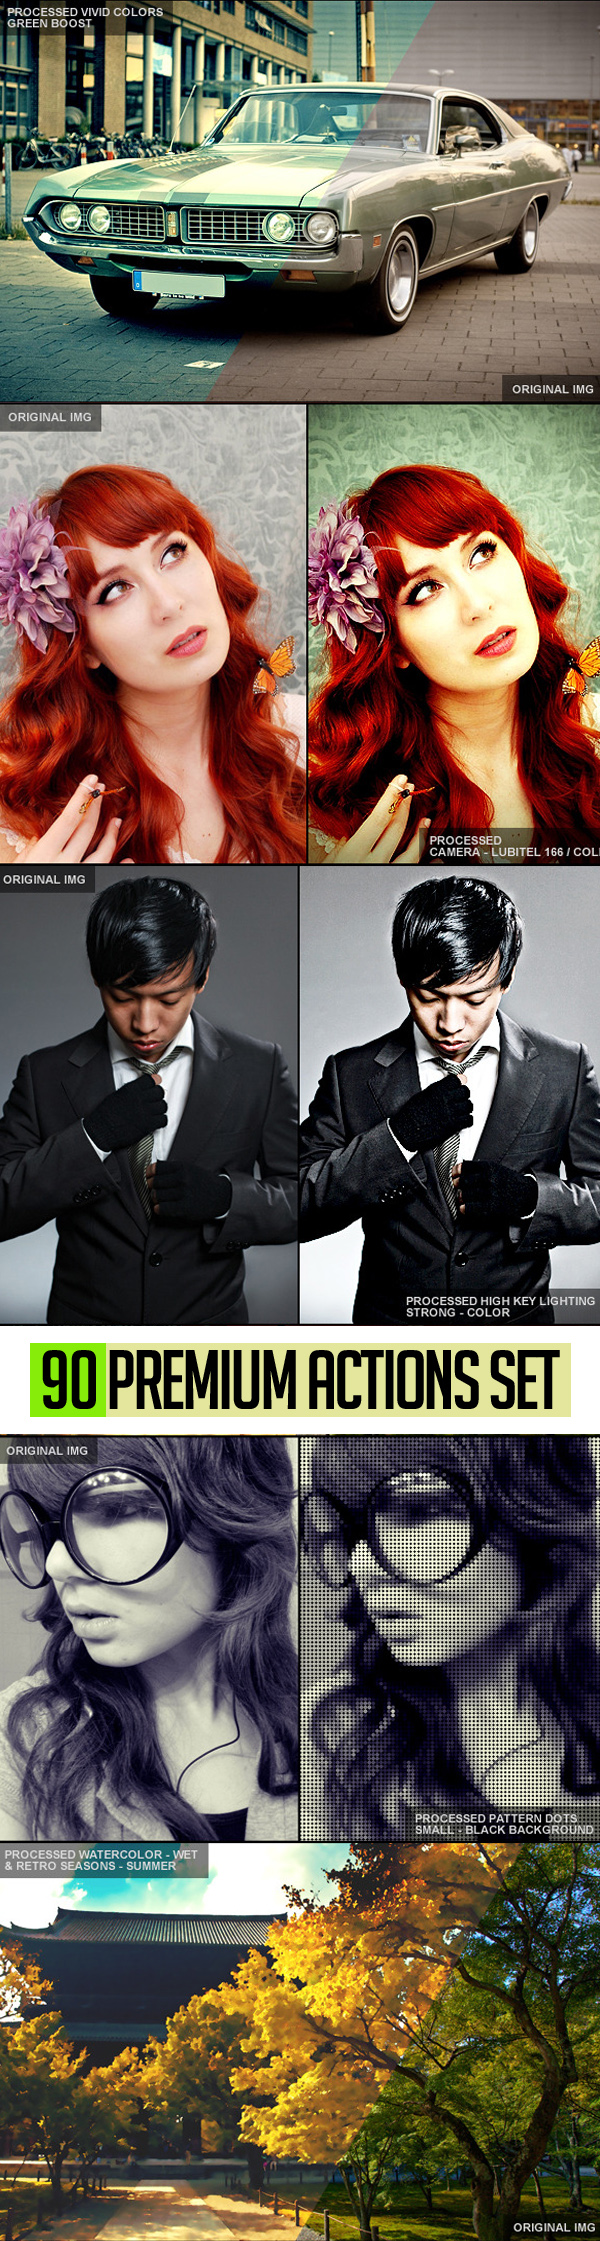 90 Premium Photoshop Actions Set